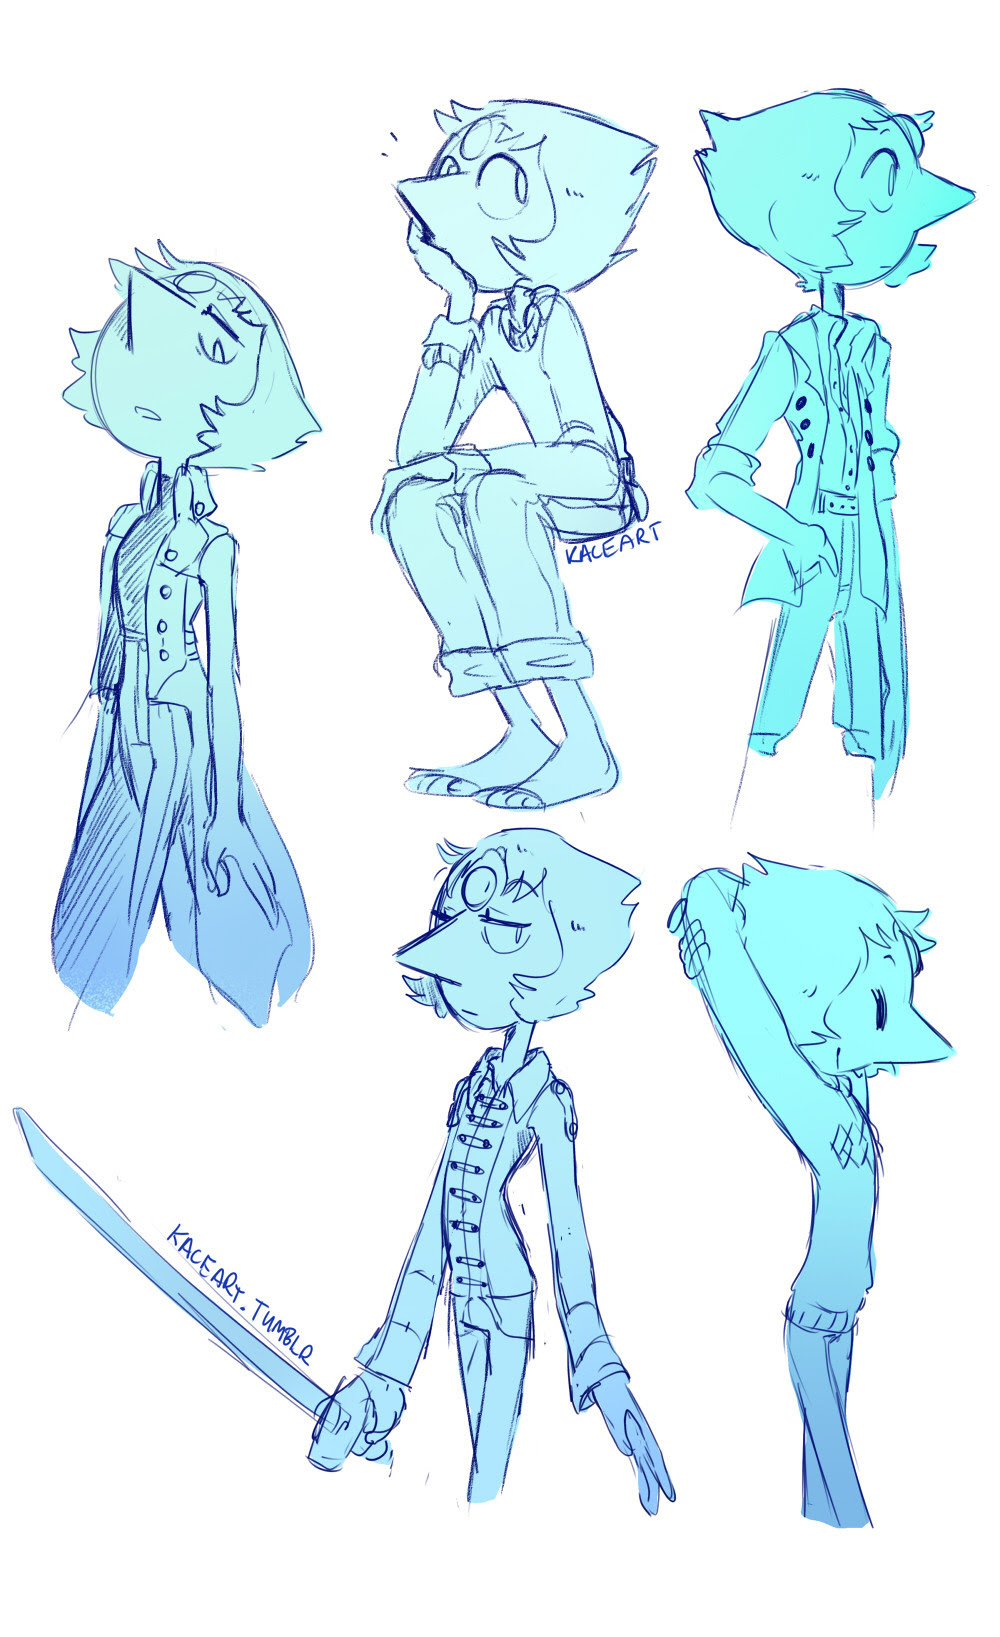 some pearls in outfits!